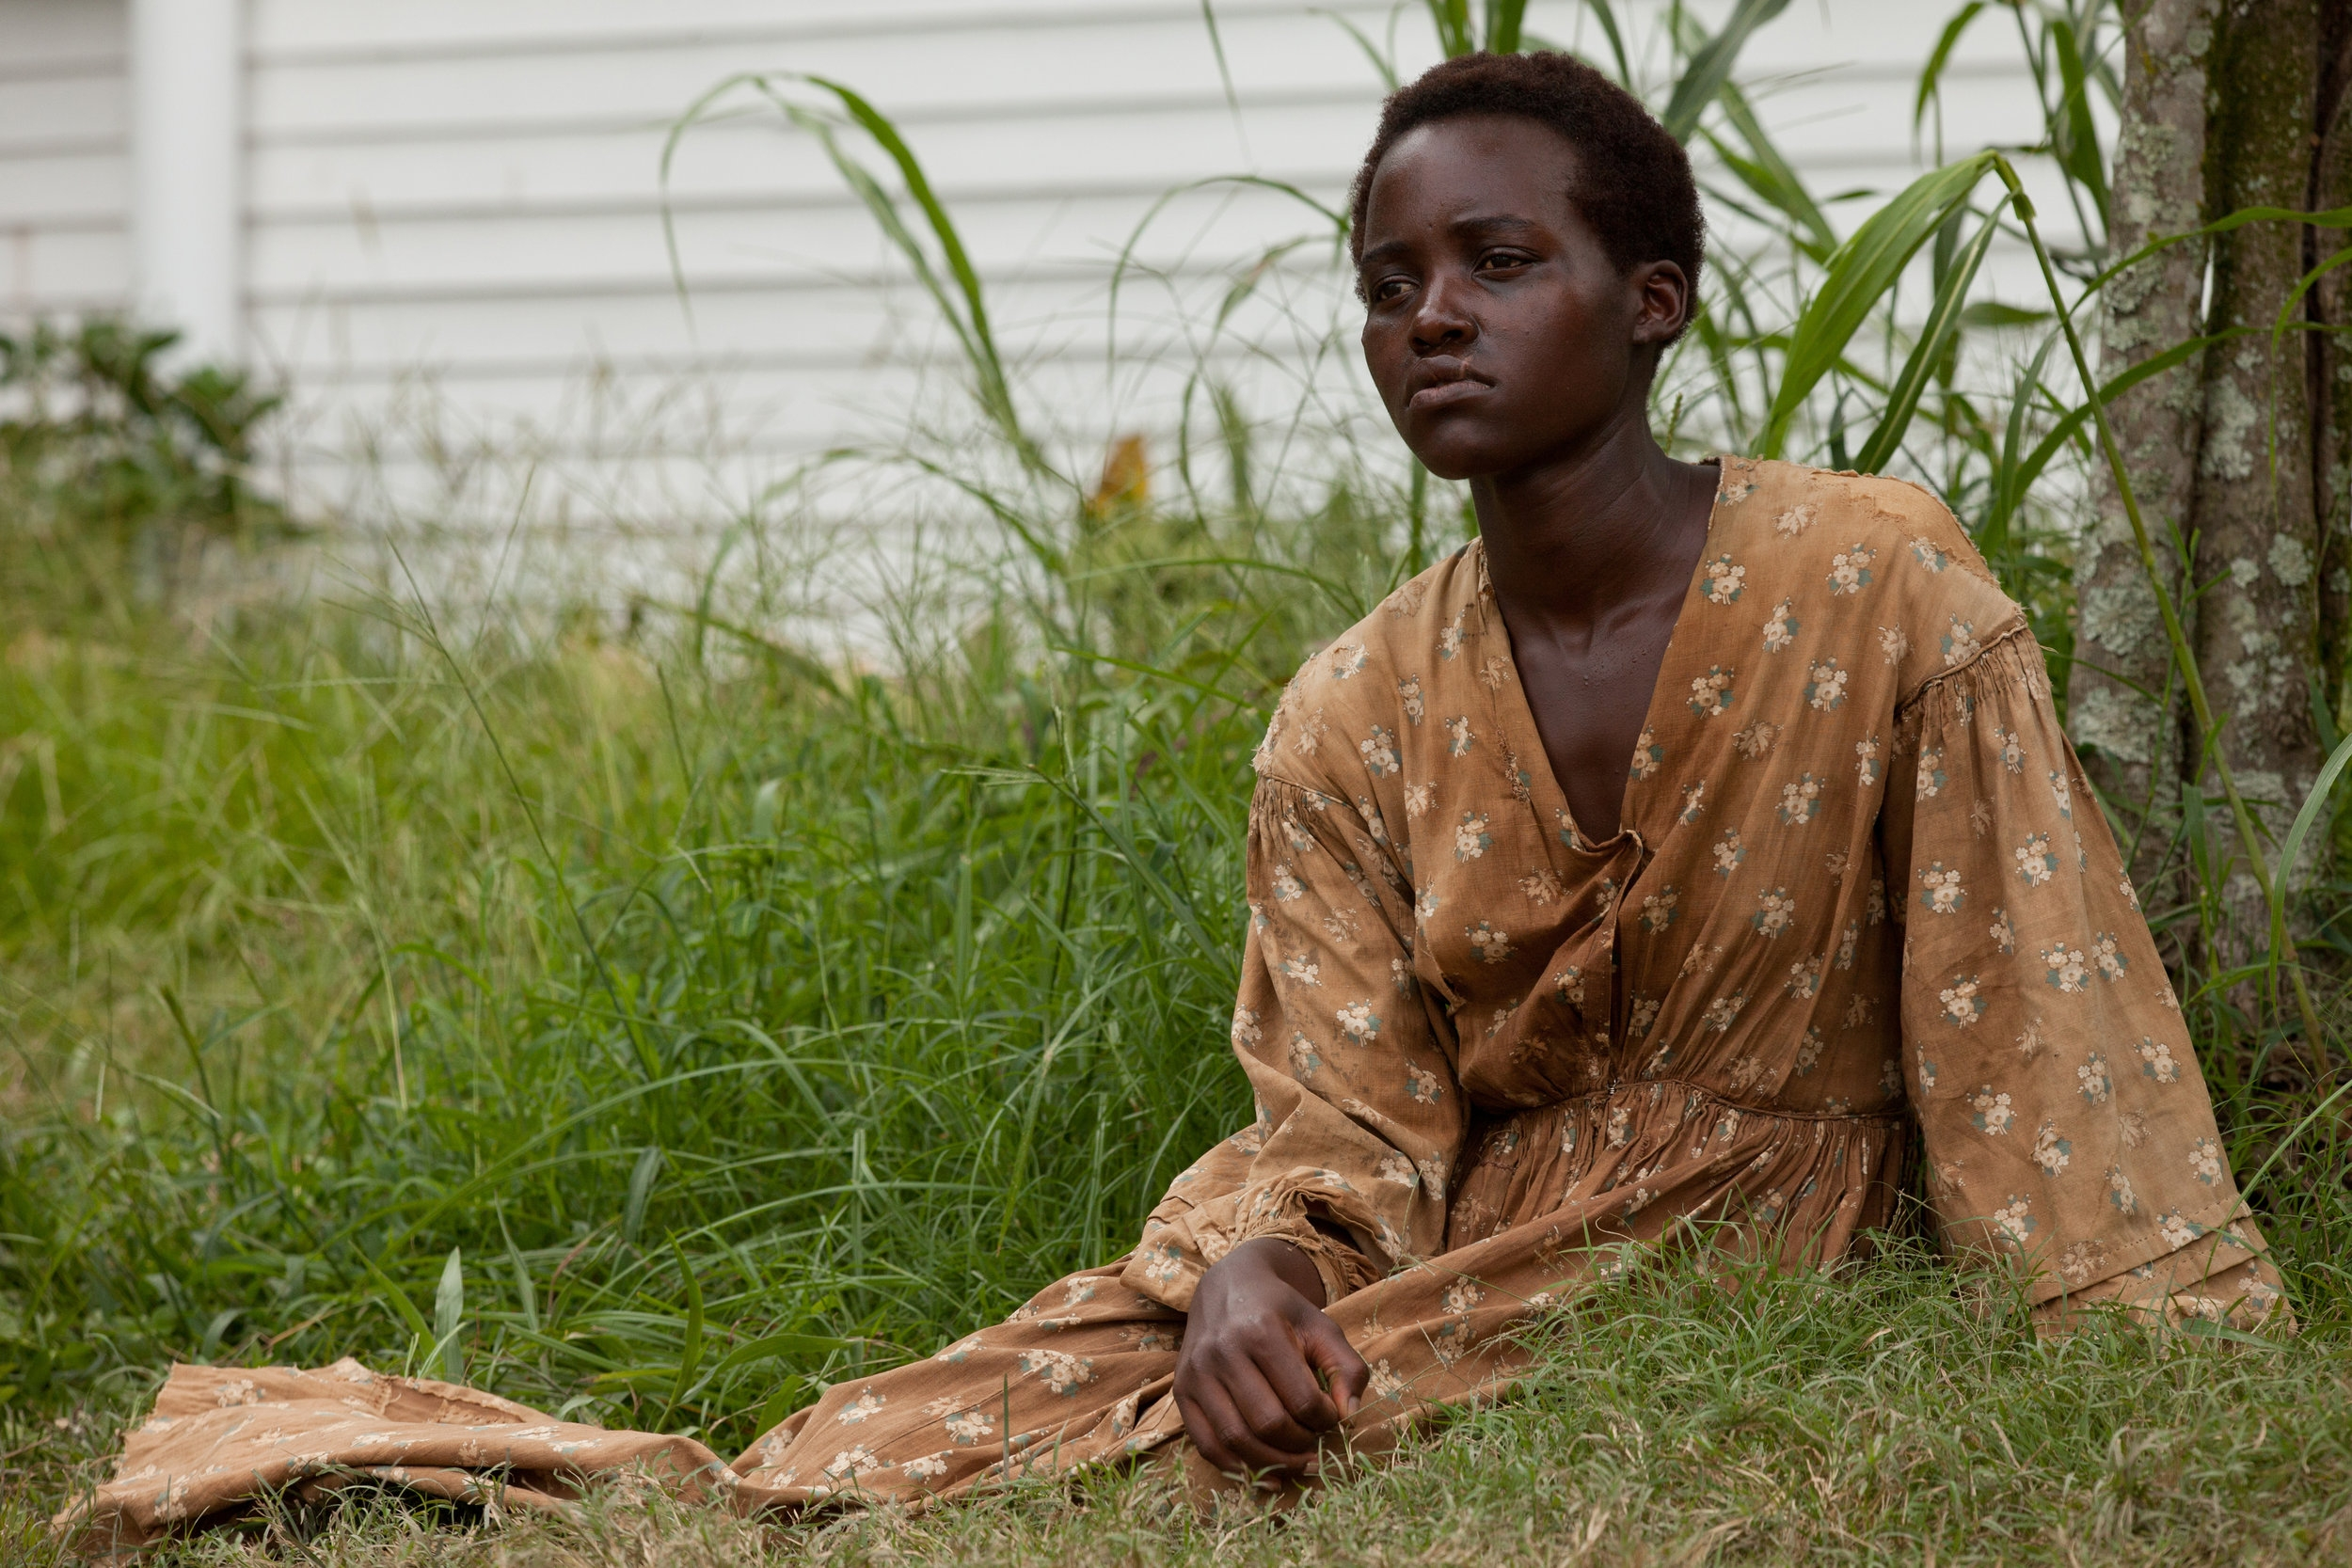 12 Years a Slave (2013) - Directed by: Steven McQueenWritten by: John Ridley & Solomon Northup (book).